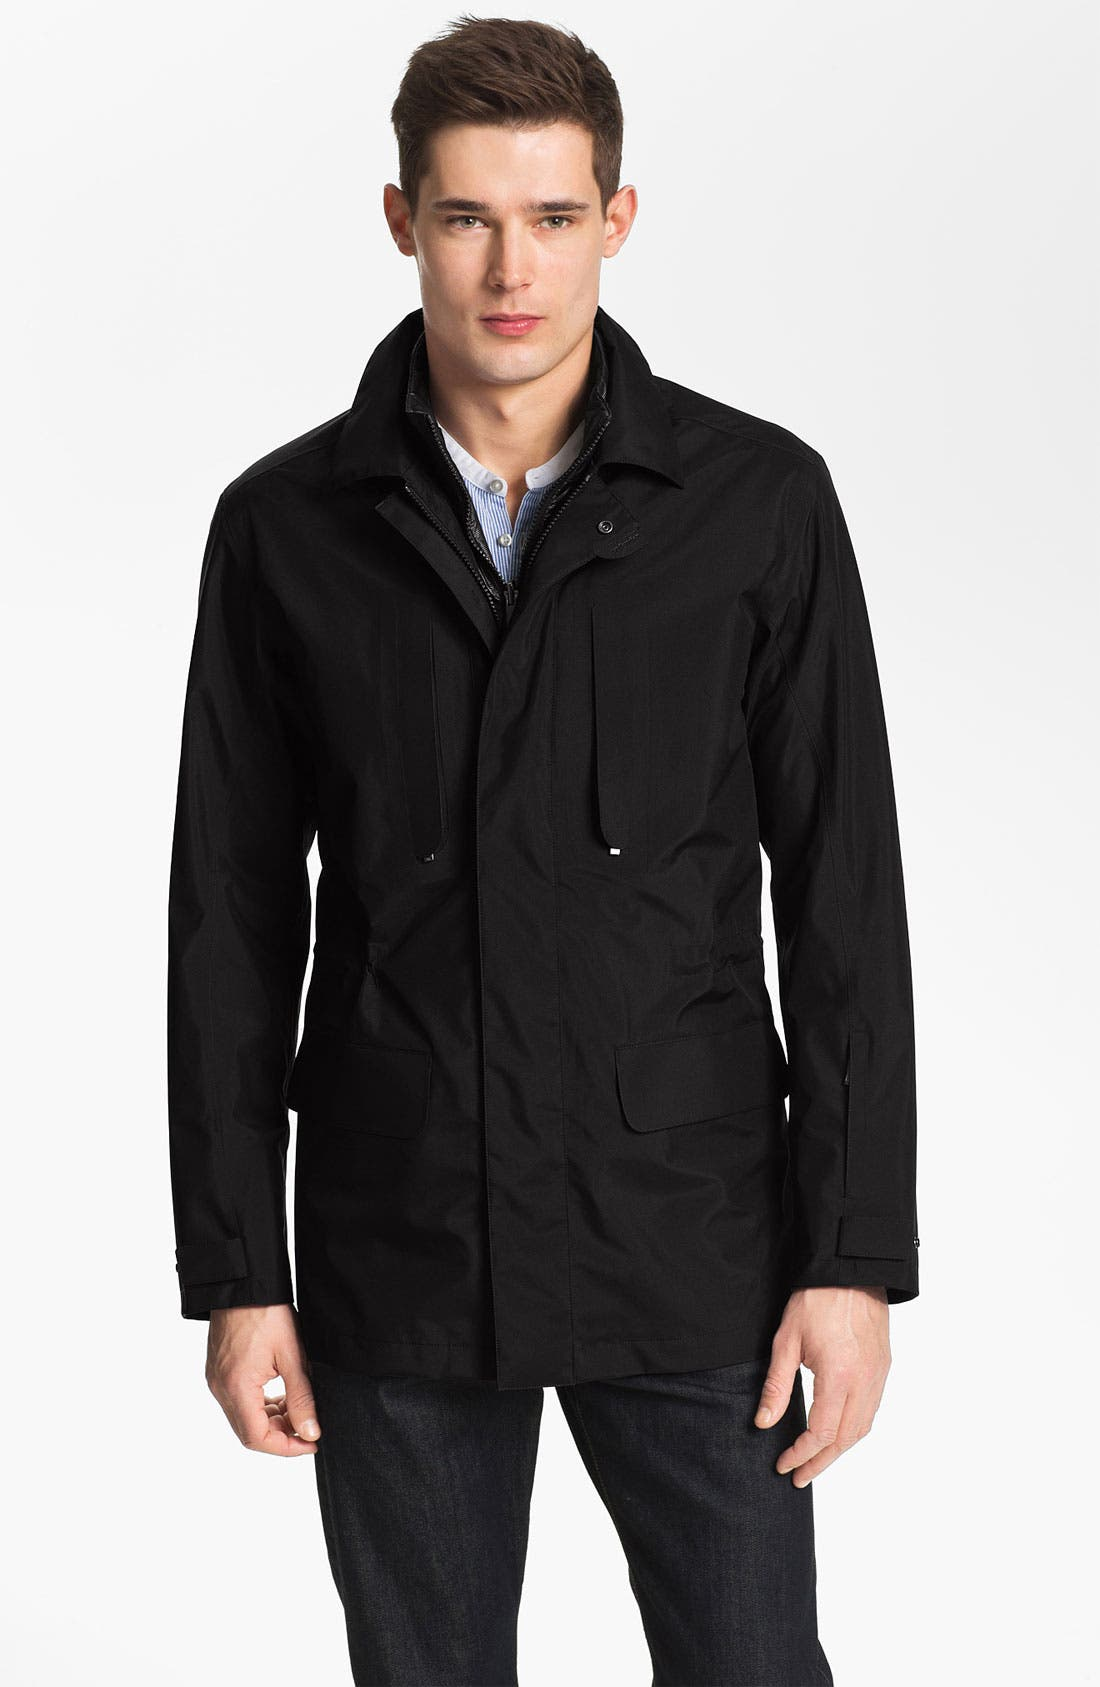 Main Image - Zegna Sport Blazer Style Field Jacket with Removable Zip Vest